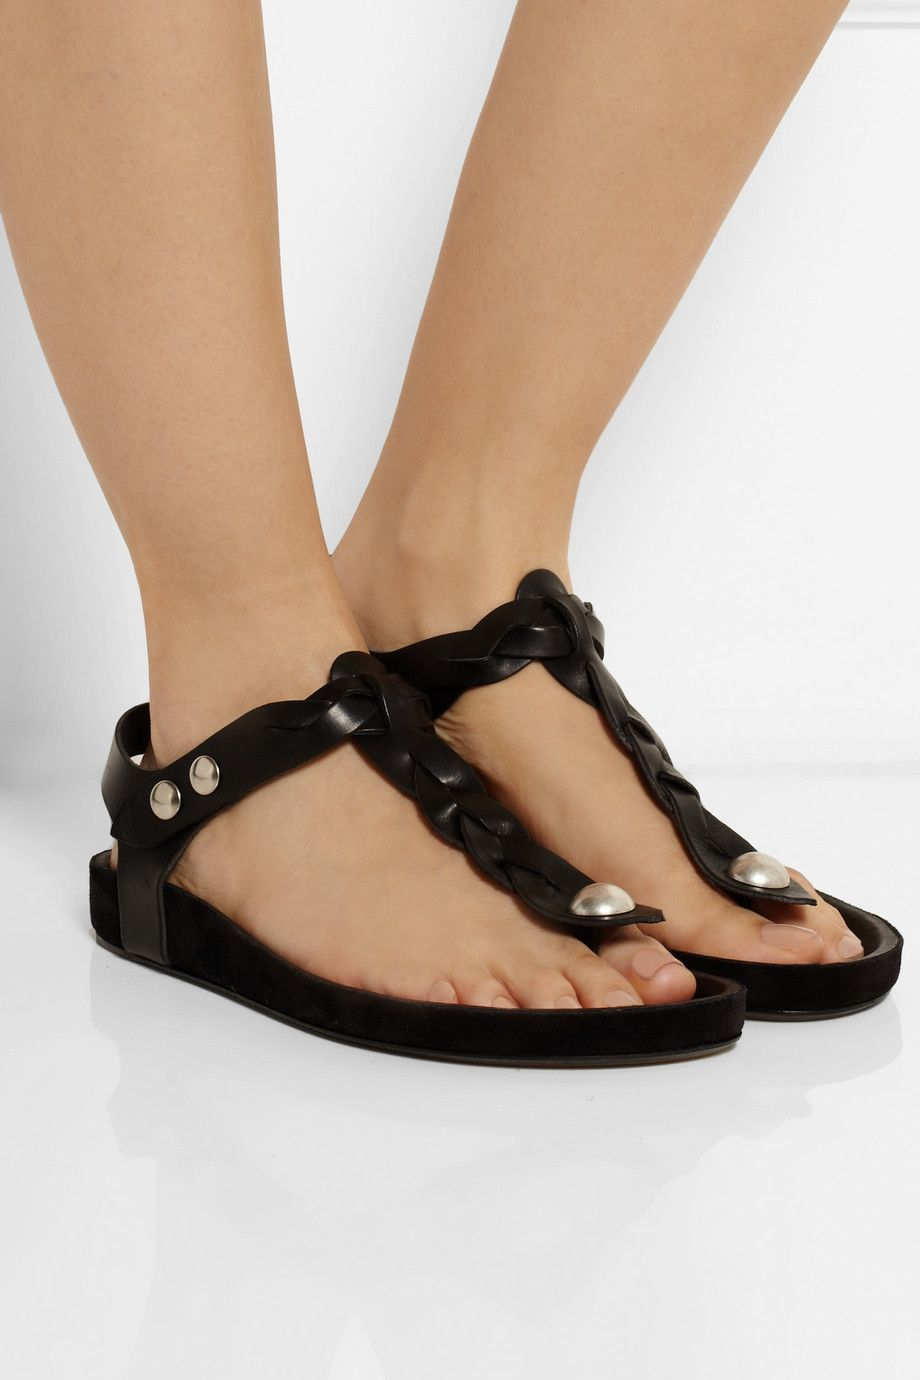 free shipping geniue stockist buy cheap cheapest price Isabel Marant Leather Braided Sandals free shipping 100% guaranteed for sale 2014 cheap sale factory outlet ChuS9Yx